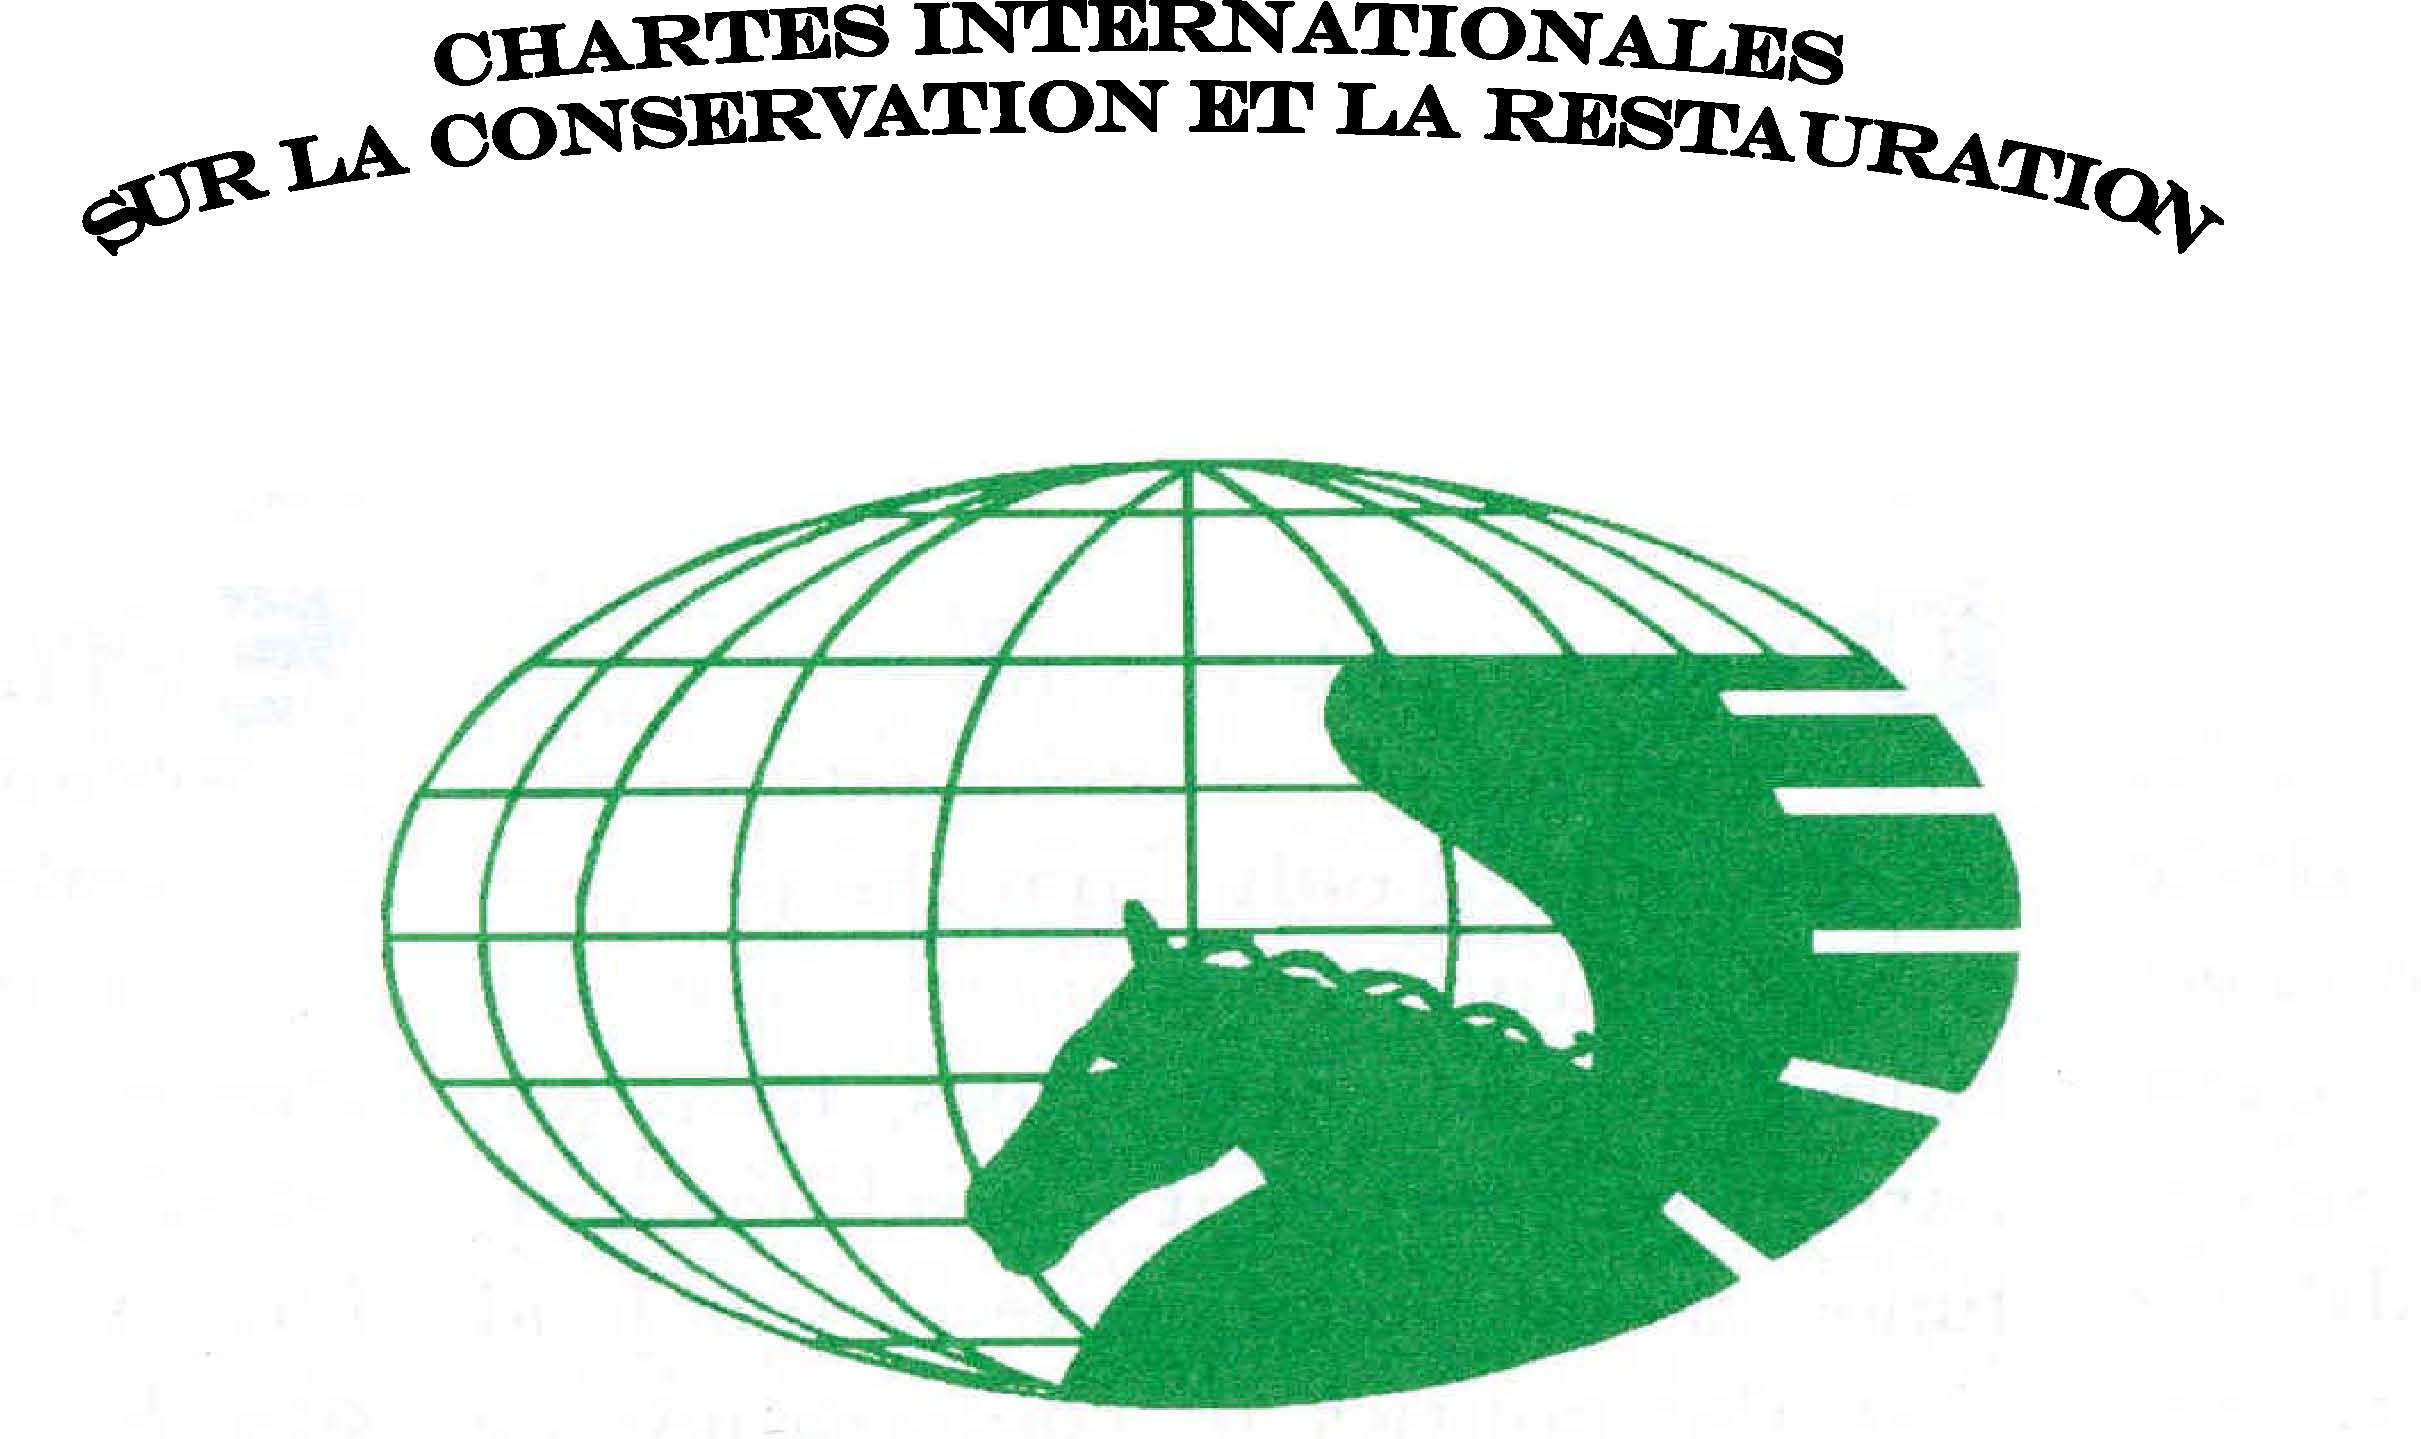 CHARTE INTERNATIONALE SUR LA CONSERVATION ET LA RESTAURATION DES MONUMENTS ET DES SITES